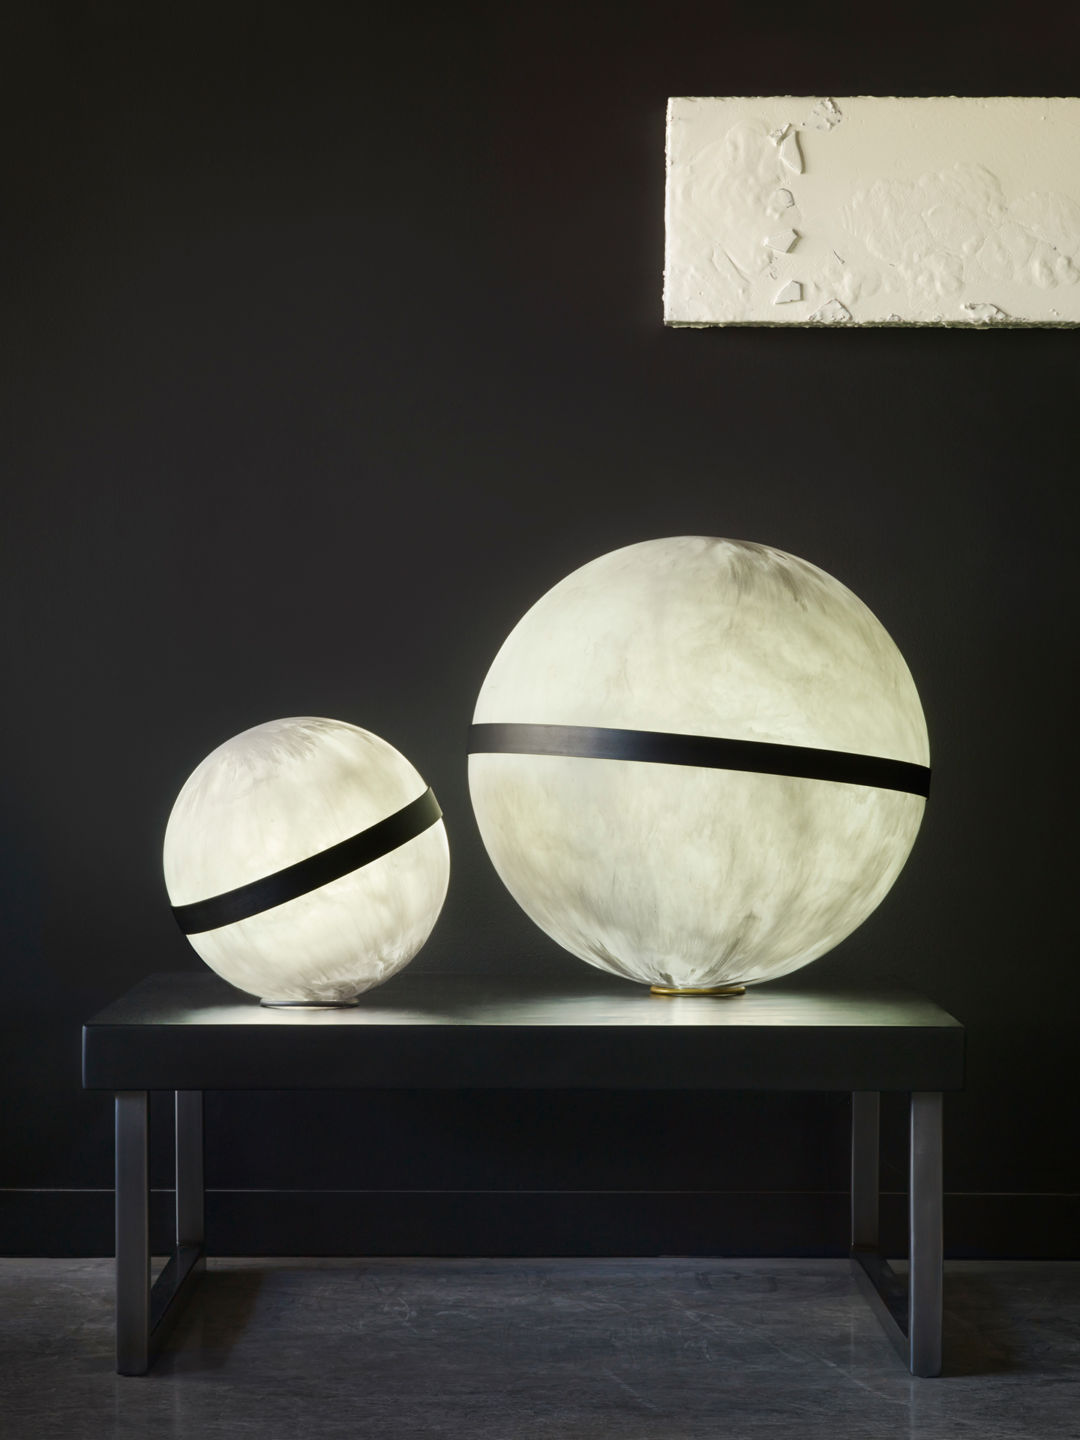 sphere lights on a table